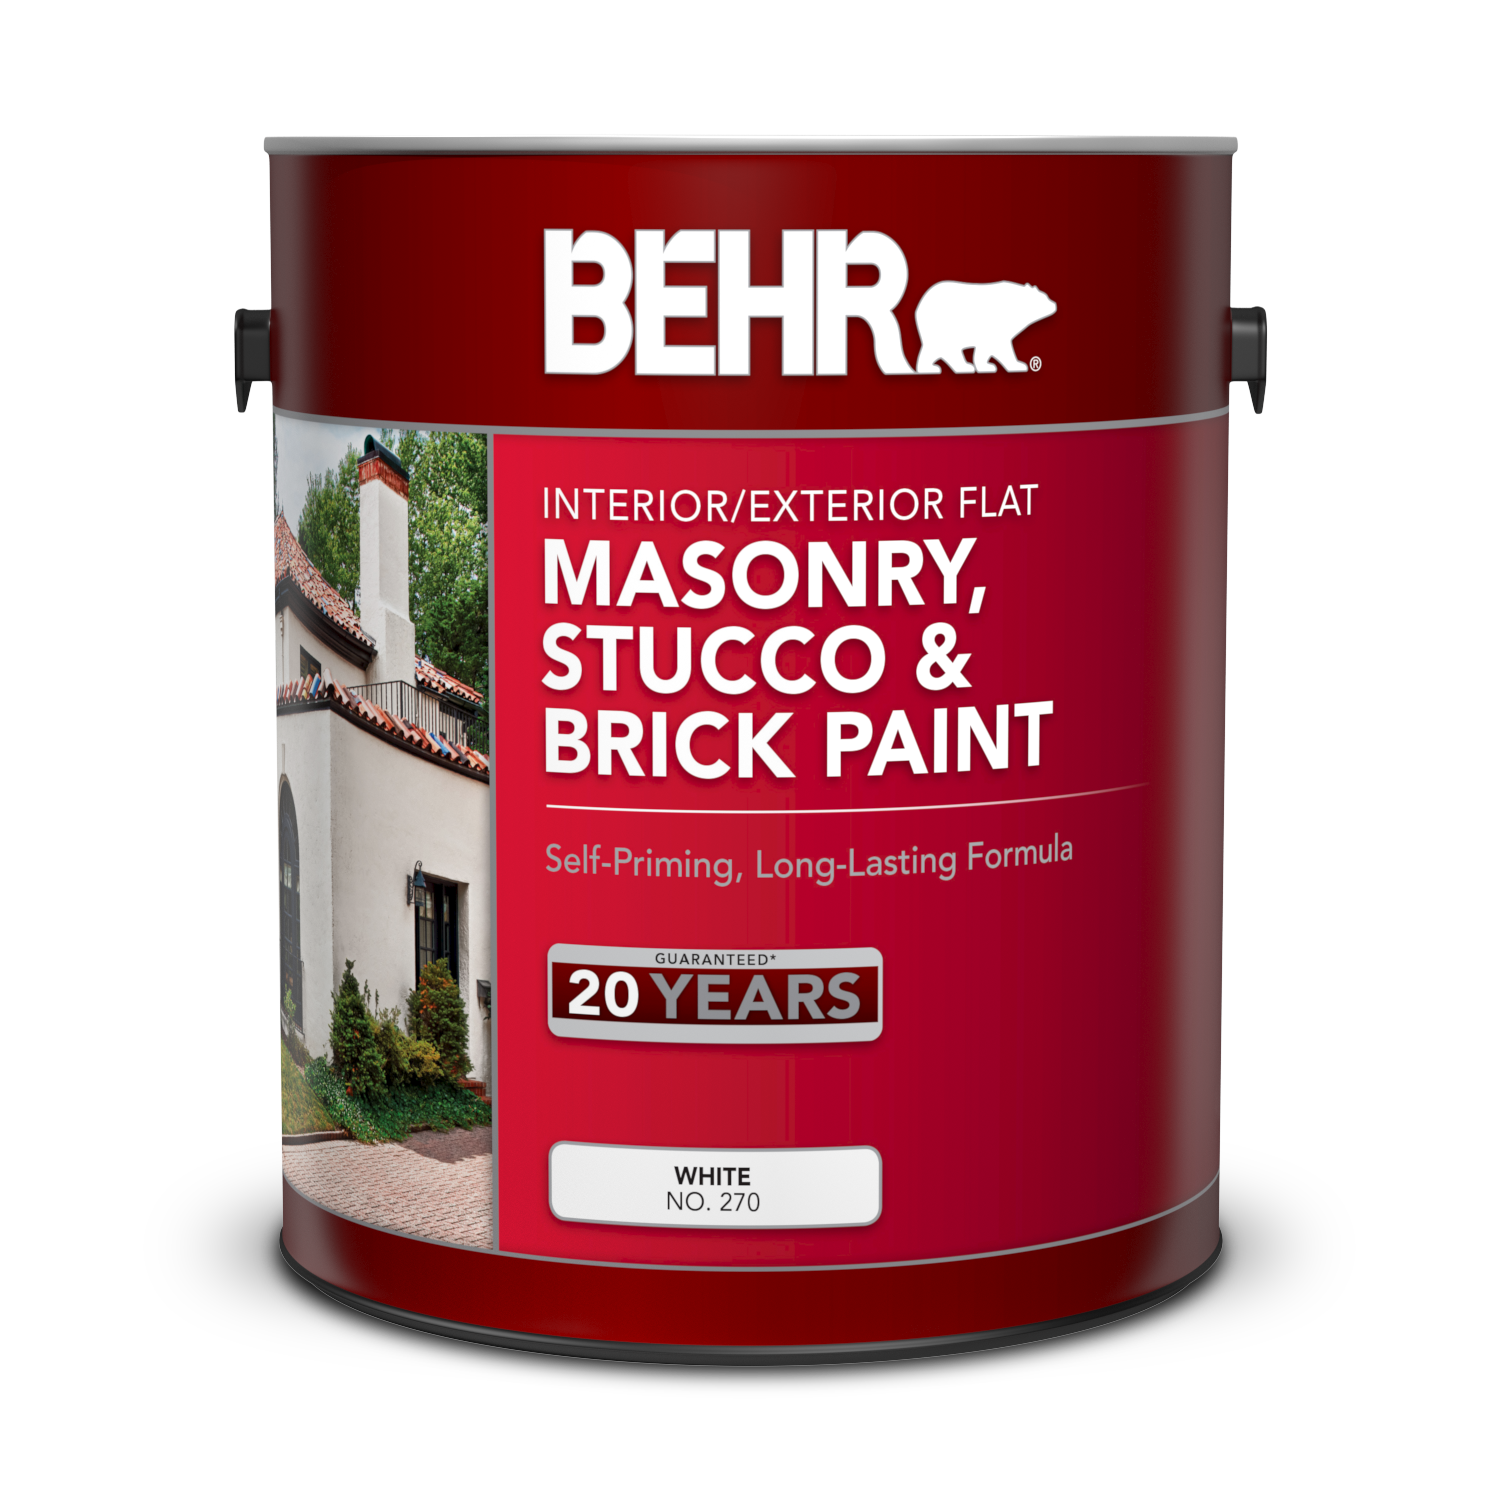 Interior / Exterior Masonry, Stucco, And Brick Flat Paint